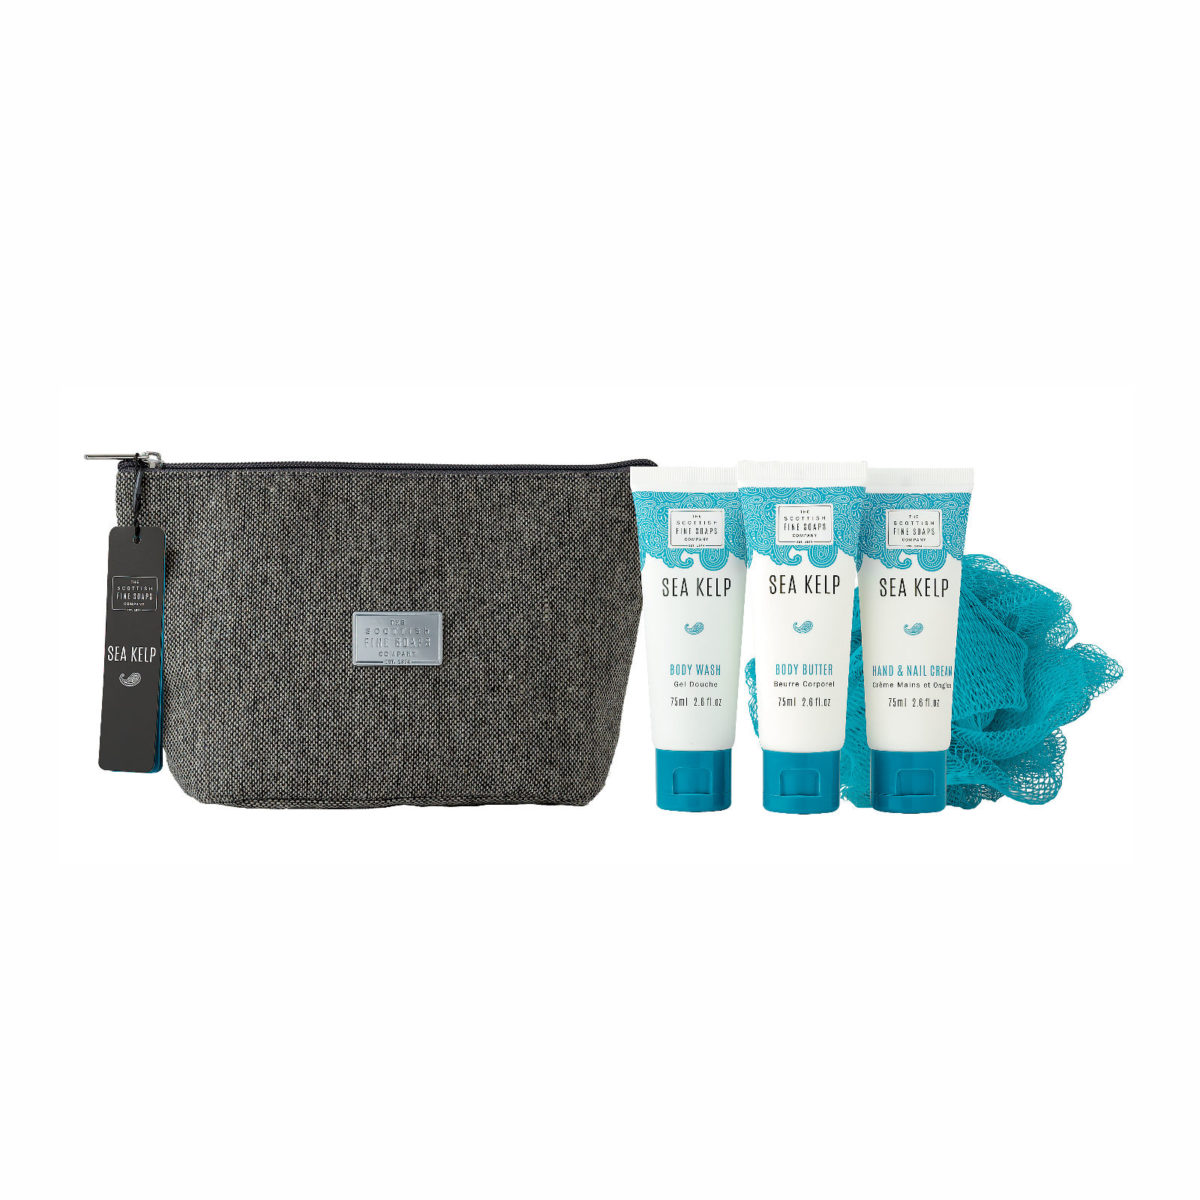 Sea Kelp Toiletry Bag Gift Set